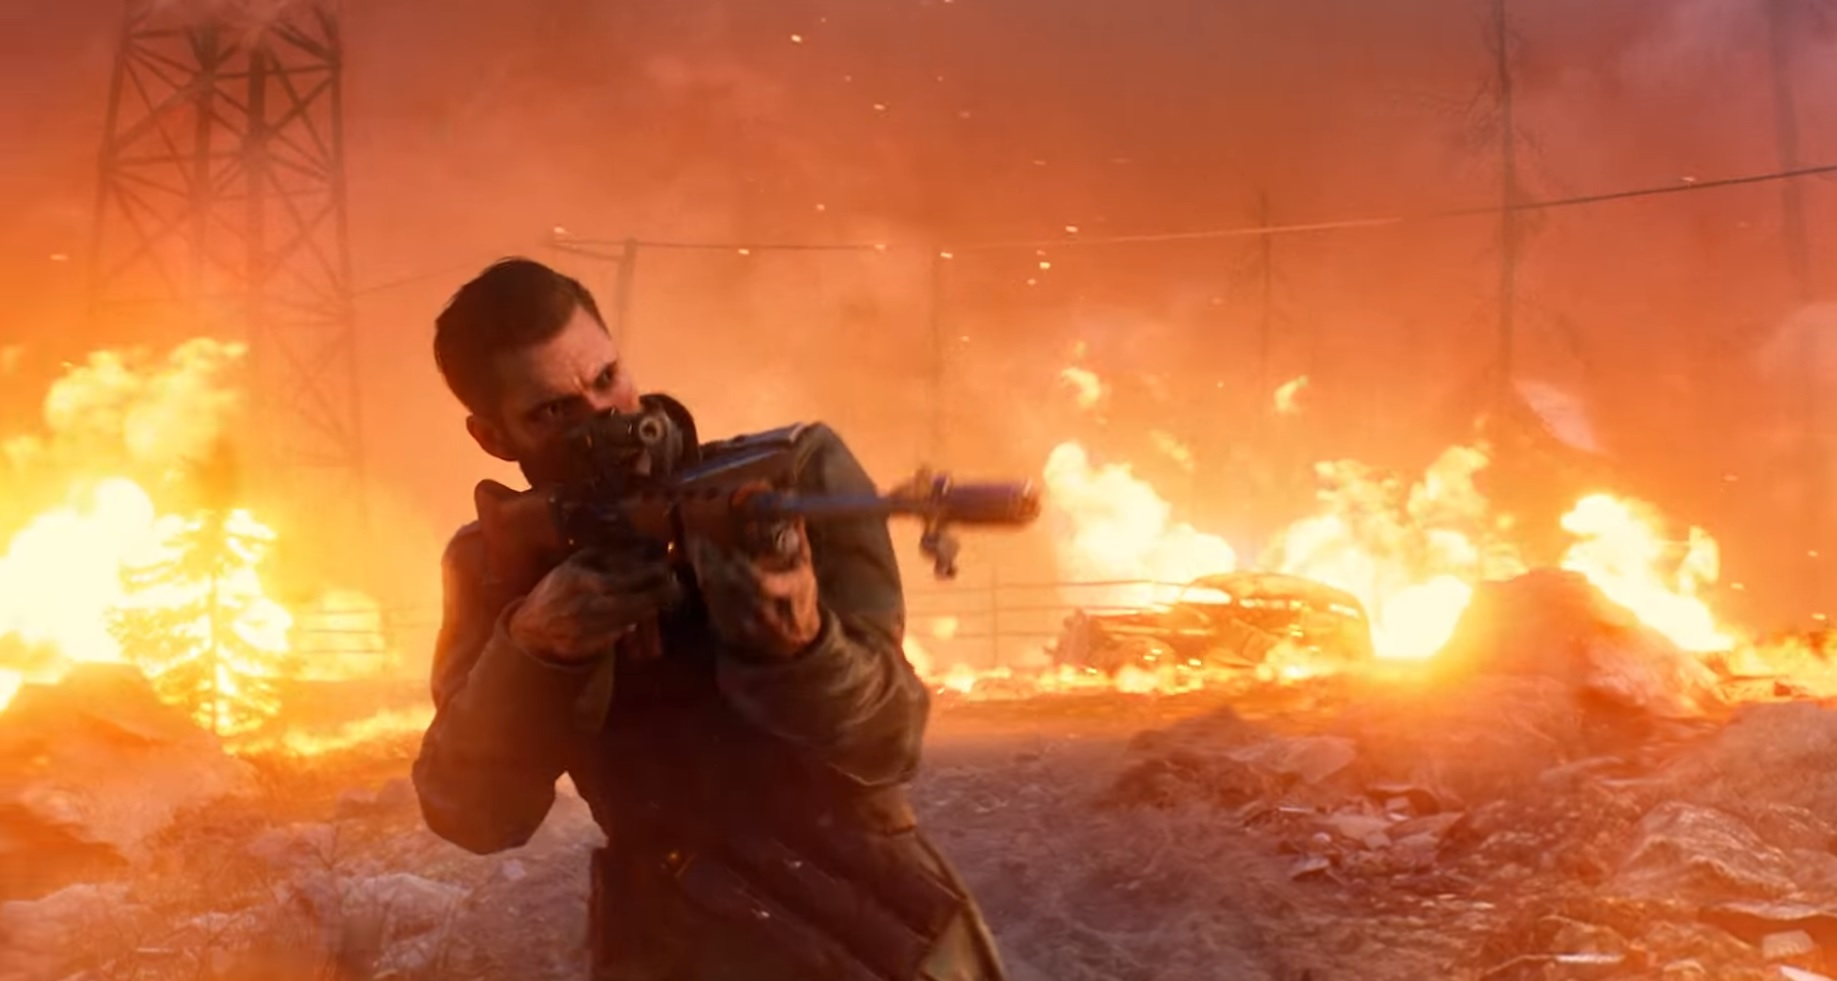 DICE removes duos from Battlefield 5's battle royale, citing